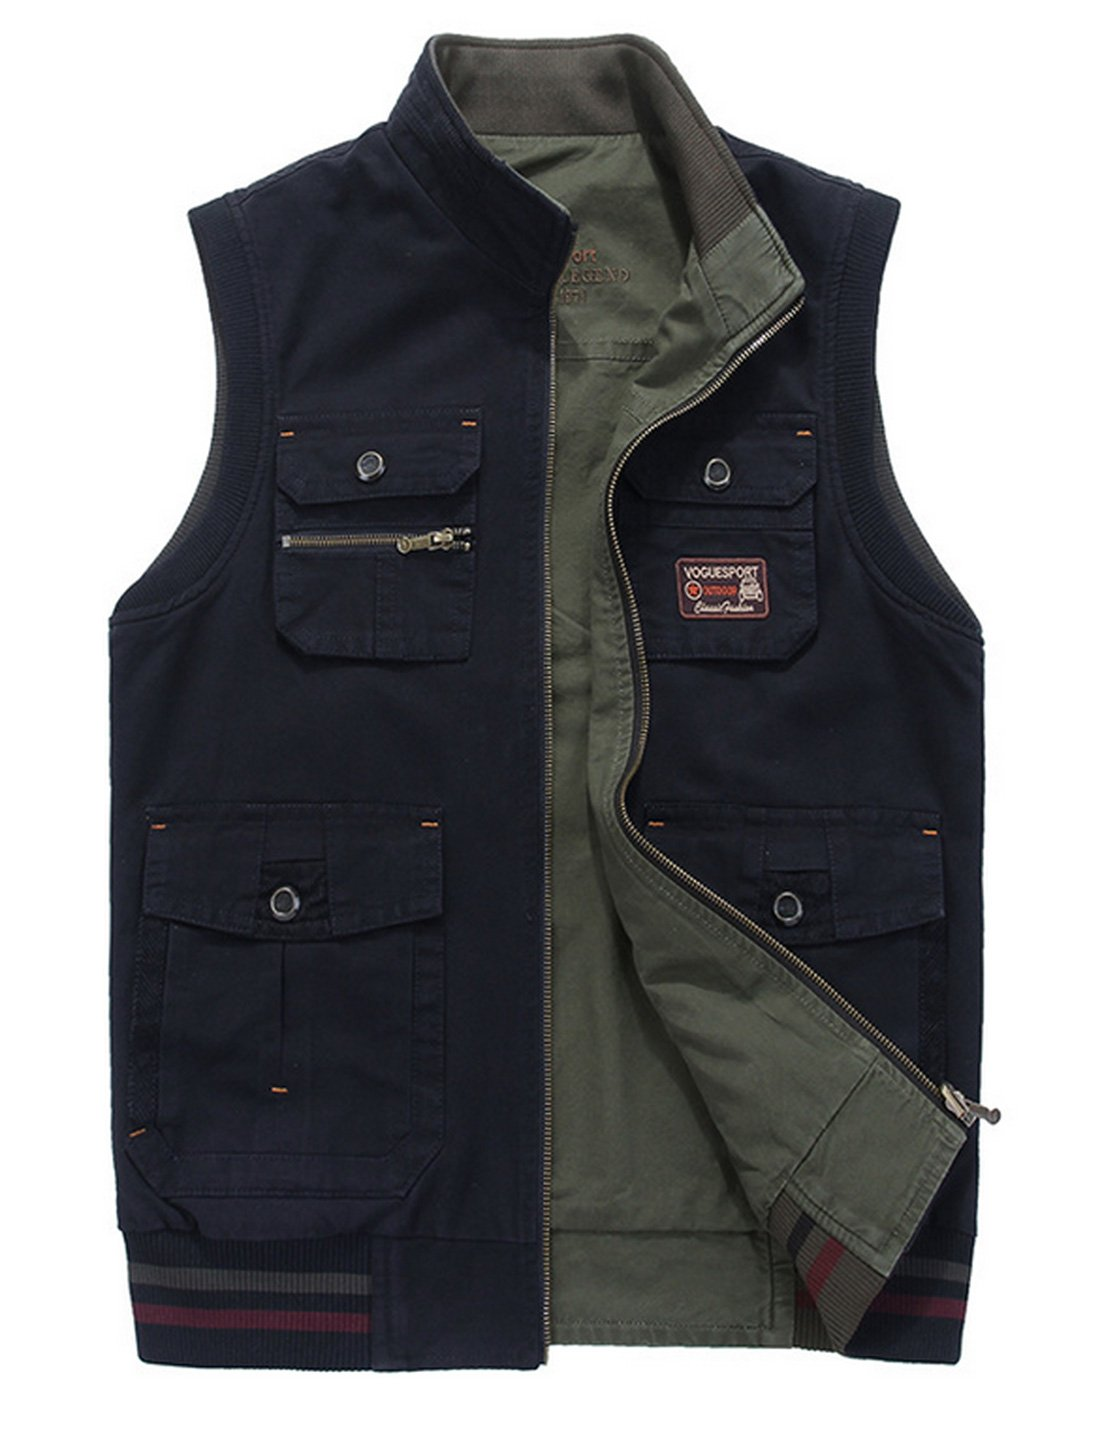 Gihuo Men's Reversible Cotton Leisure Outdoor Pockets Fish Photo Journalist Vest (X-Large, Navy) by Gihuo